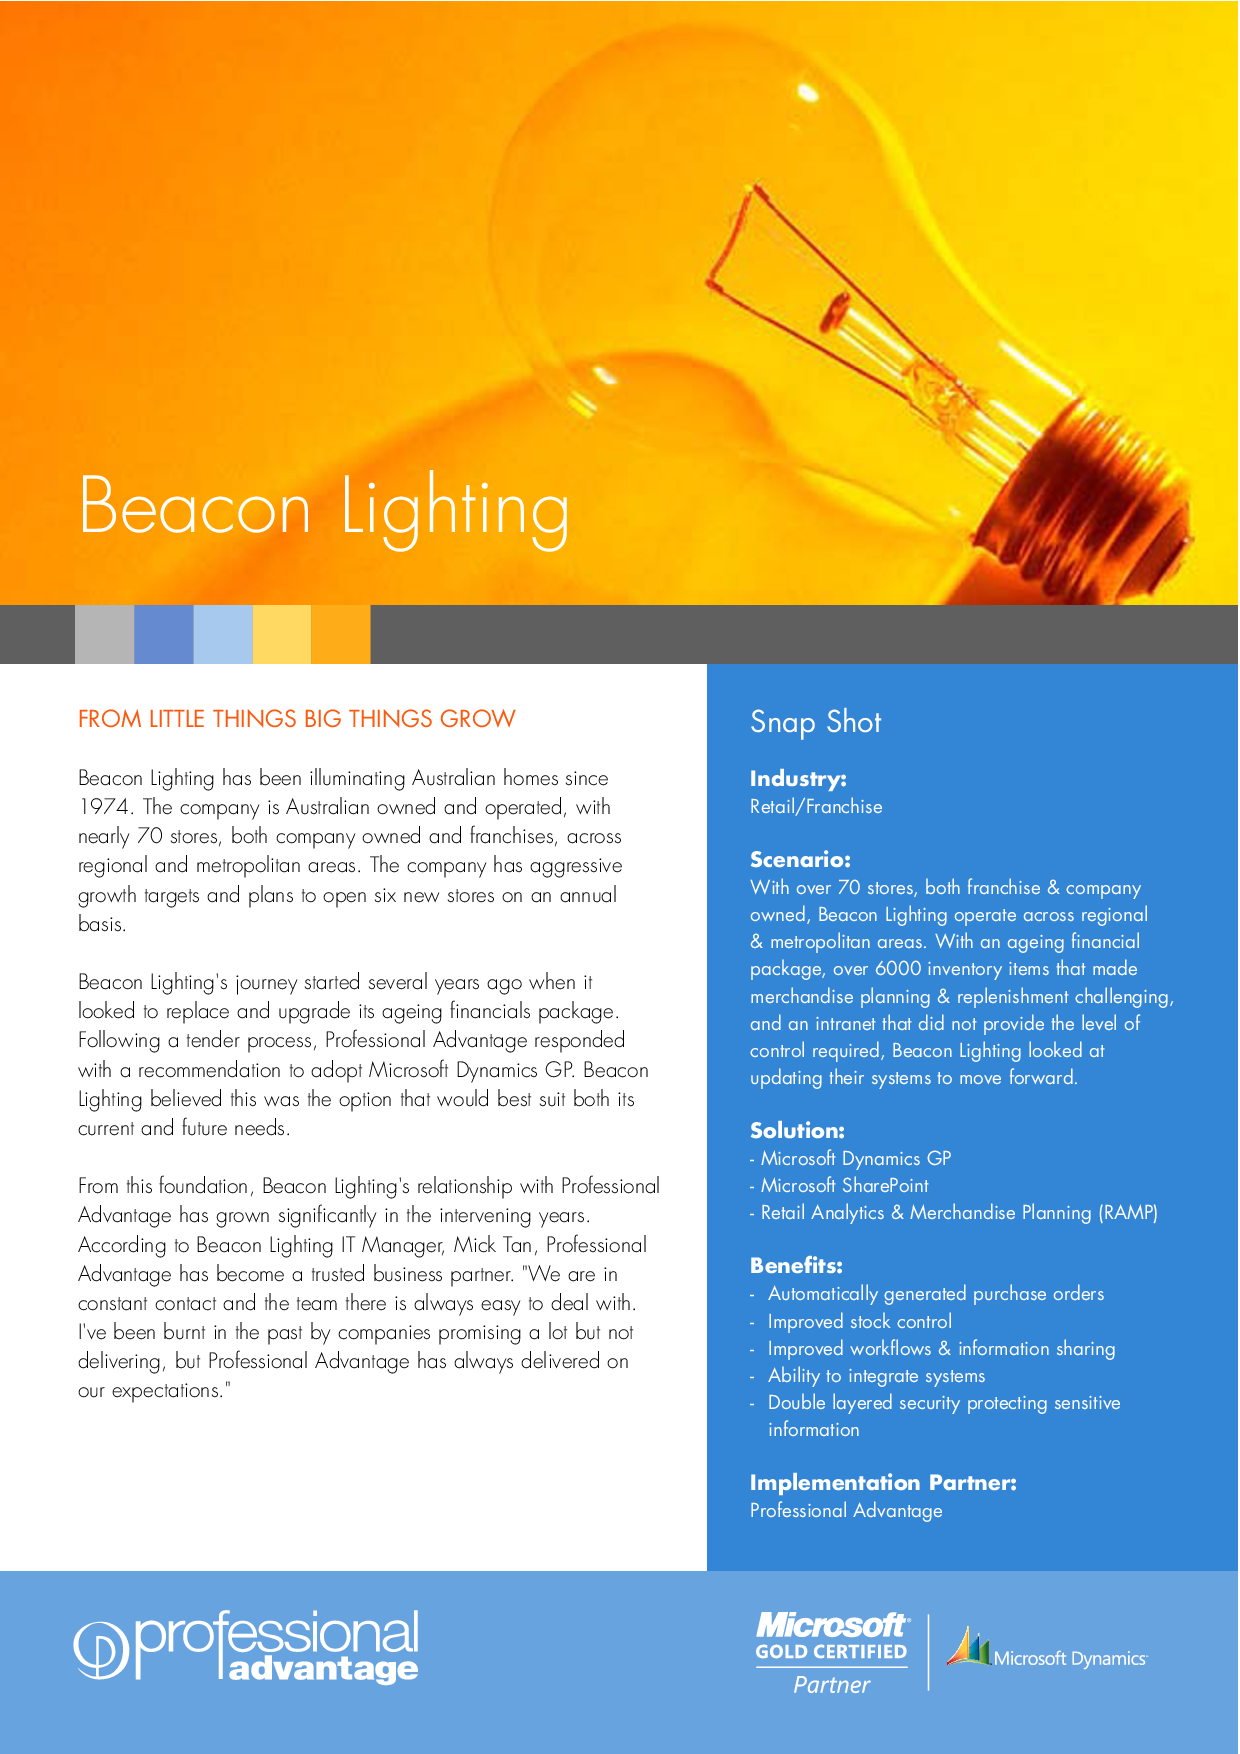 Beacon Lighting